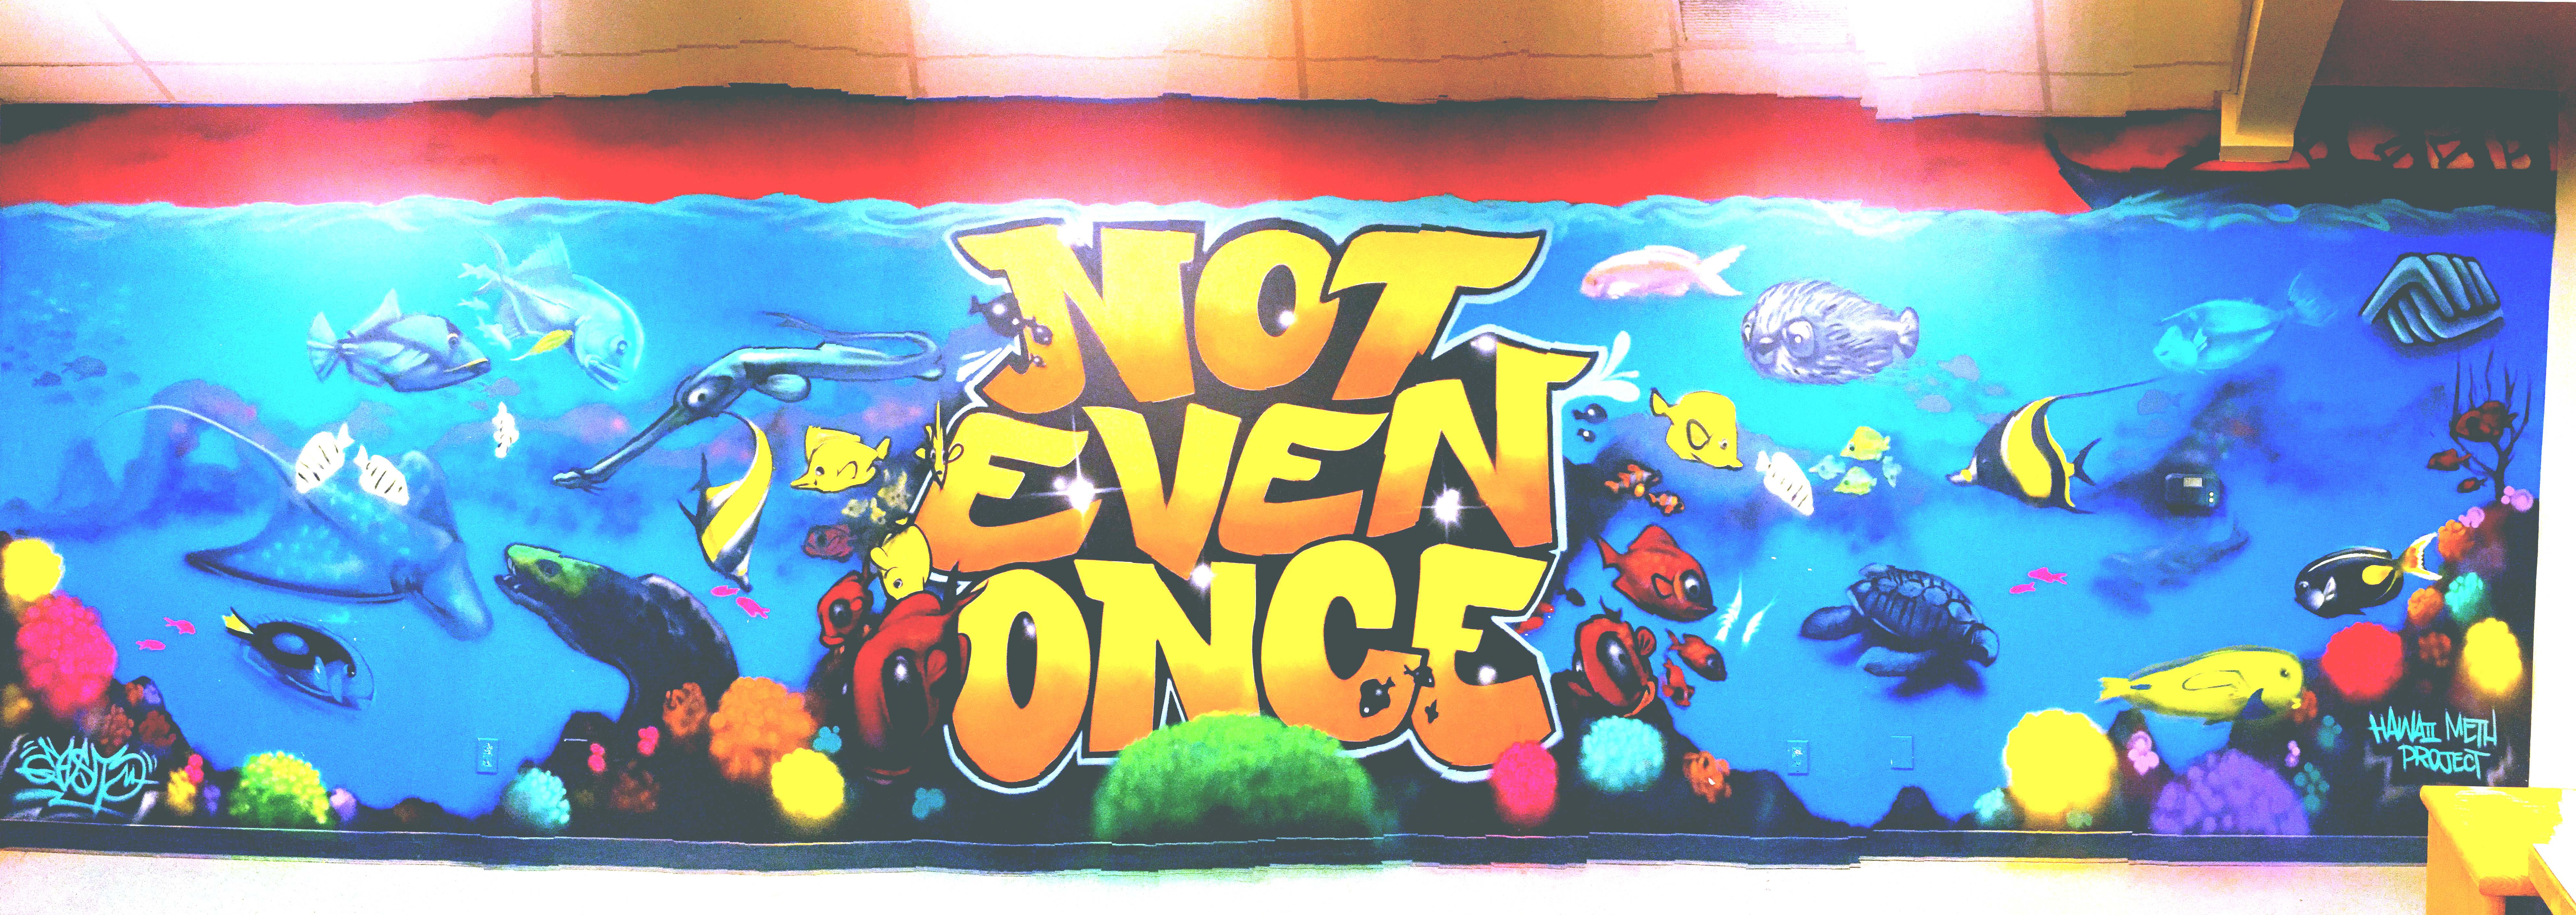 Our First Mural Was Painted At Bgcm Lahaina In February Of 2017 And It Partnership With The Hawaii Meth Project To Create An Awareness Themed